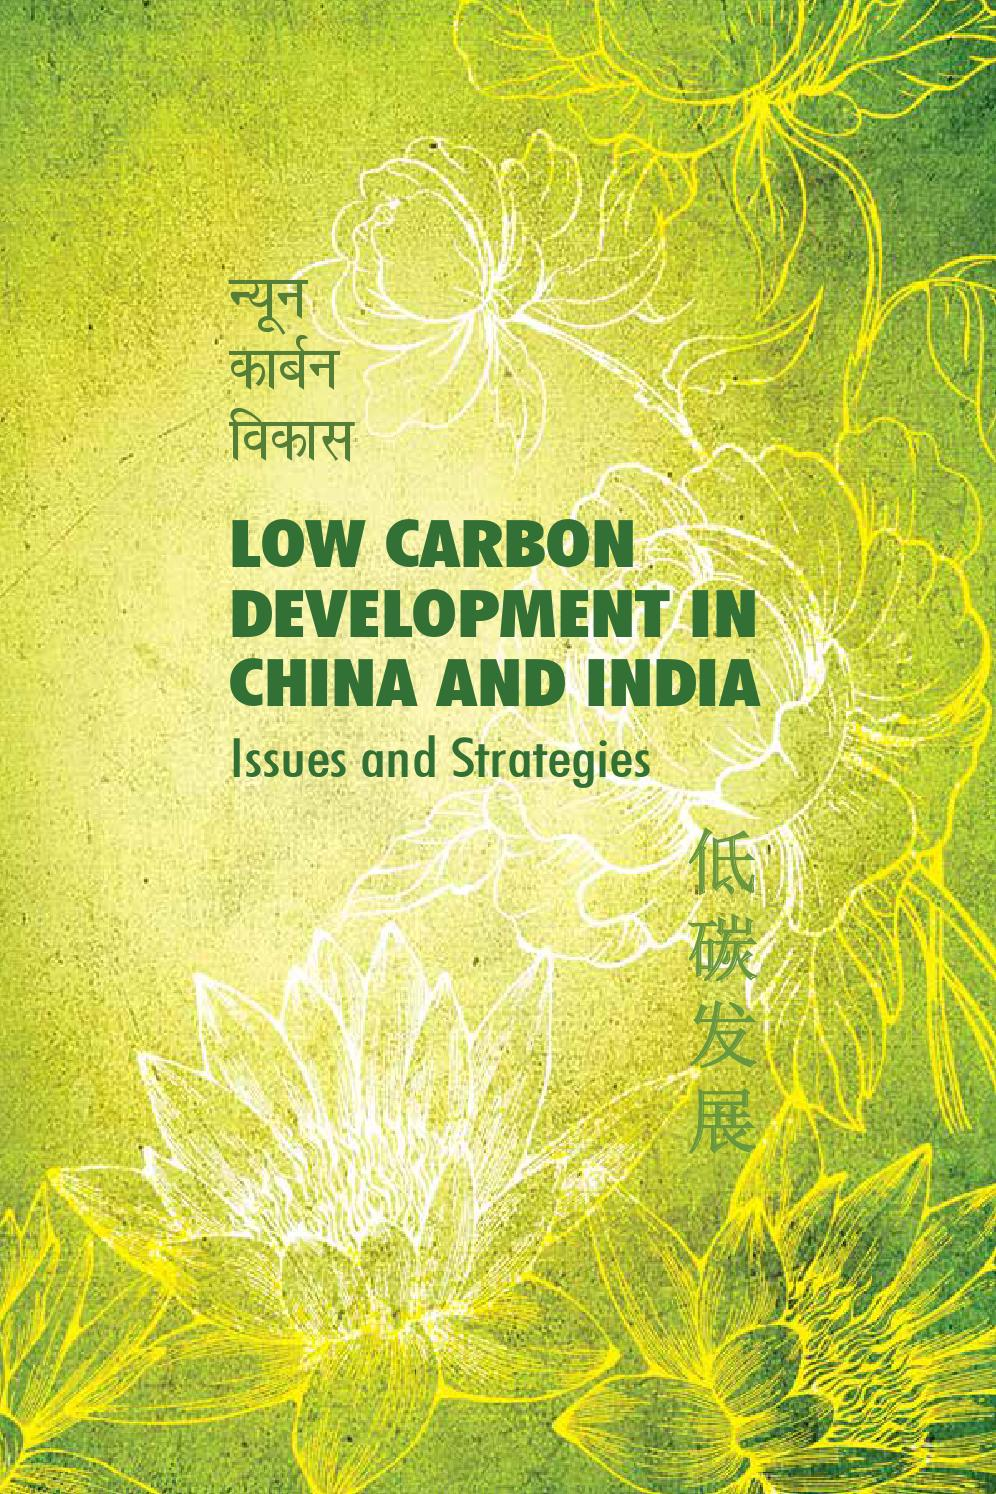 Low carbon development in china and india issues and strategies by low carbon development in china and india issues and strategies by united nations development programme undp china issuu fandeluxe Choice Image